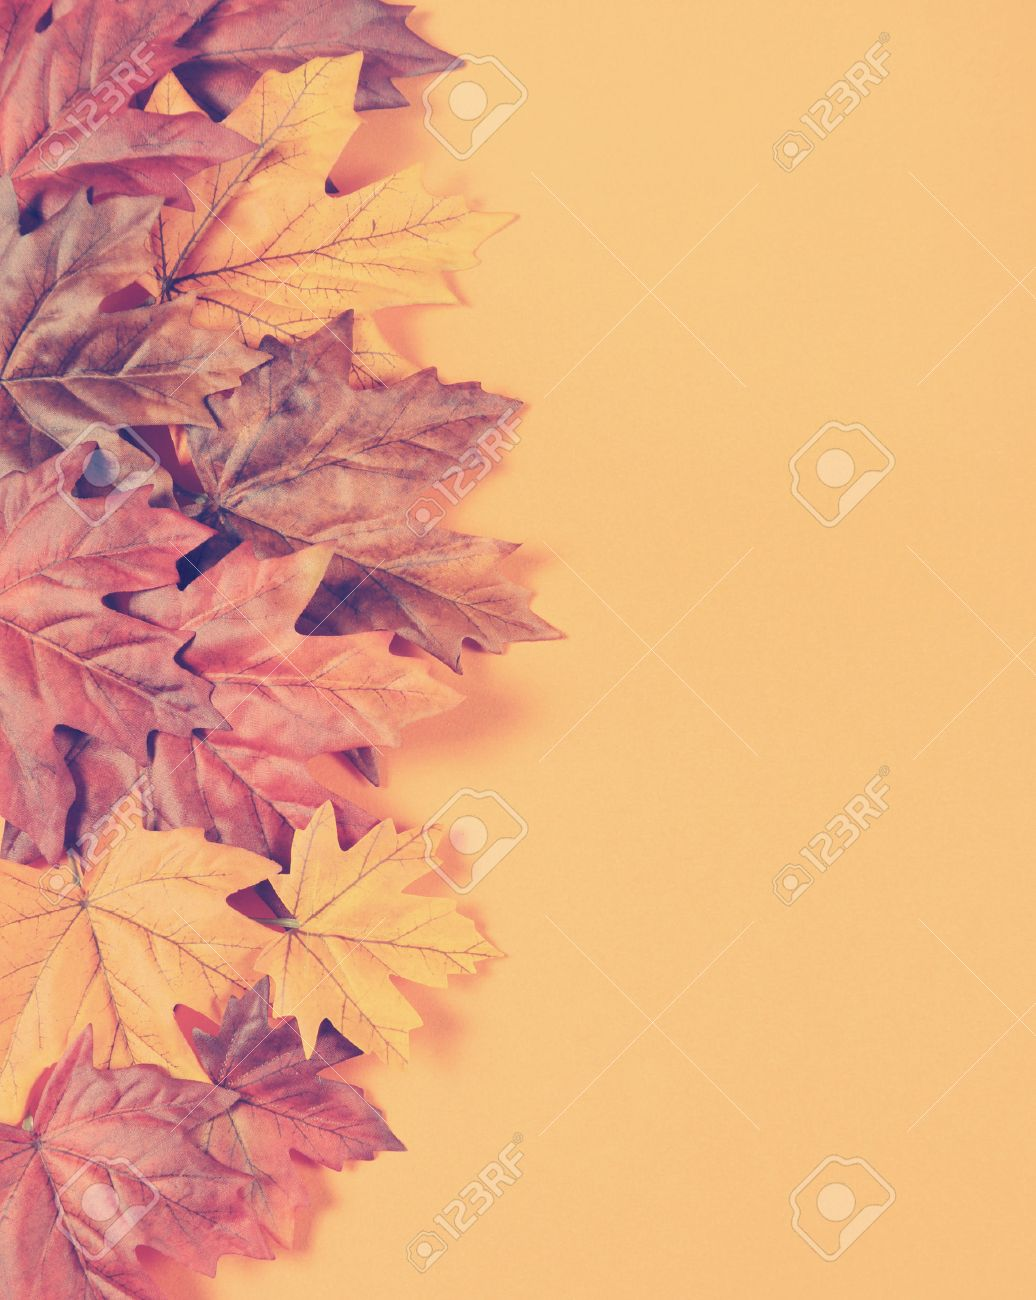 Retro Vintage Filter Autumn Leaves On Modern Trend Orange Background Stock Photo Picture And Royalty Free Image Image 31284458